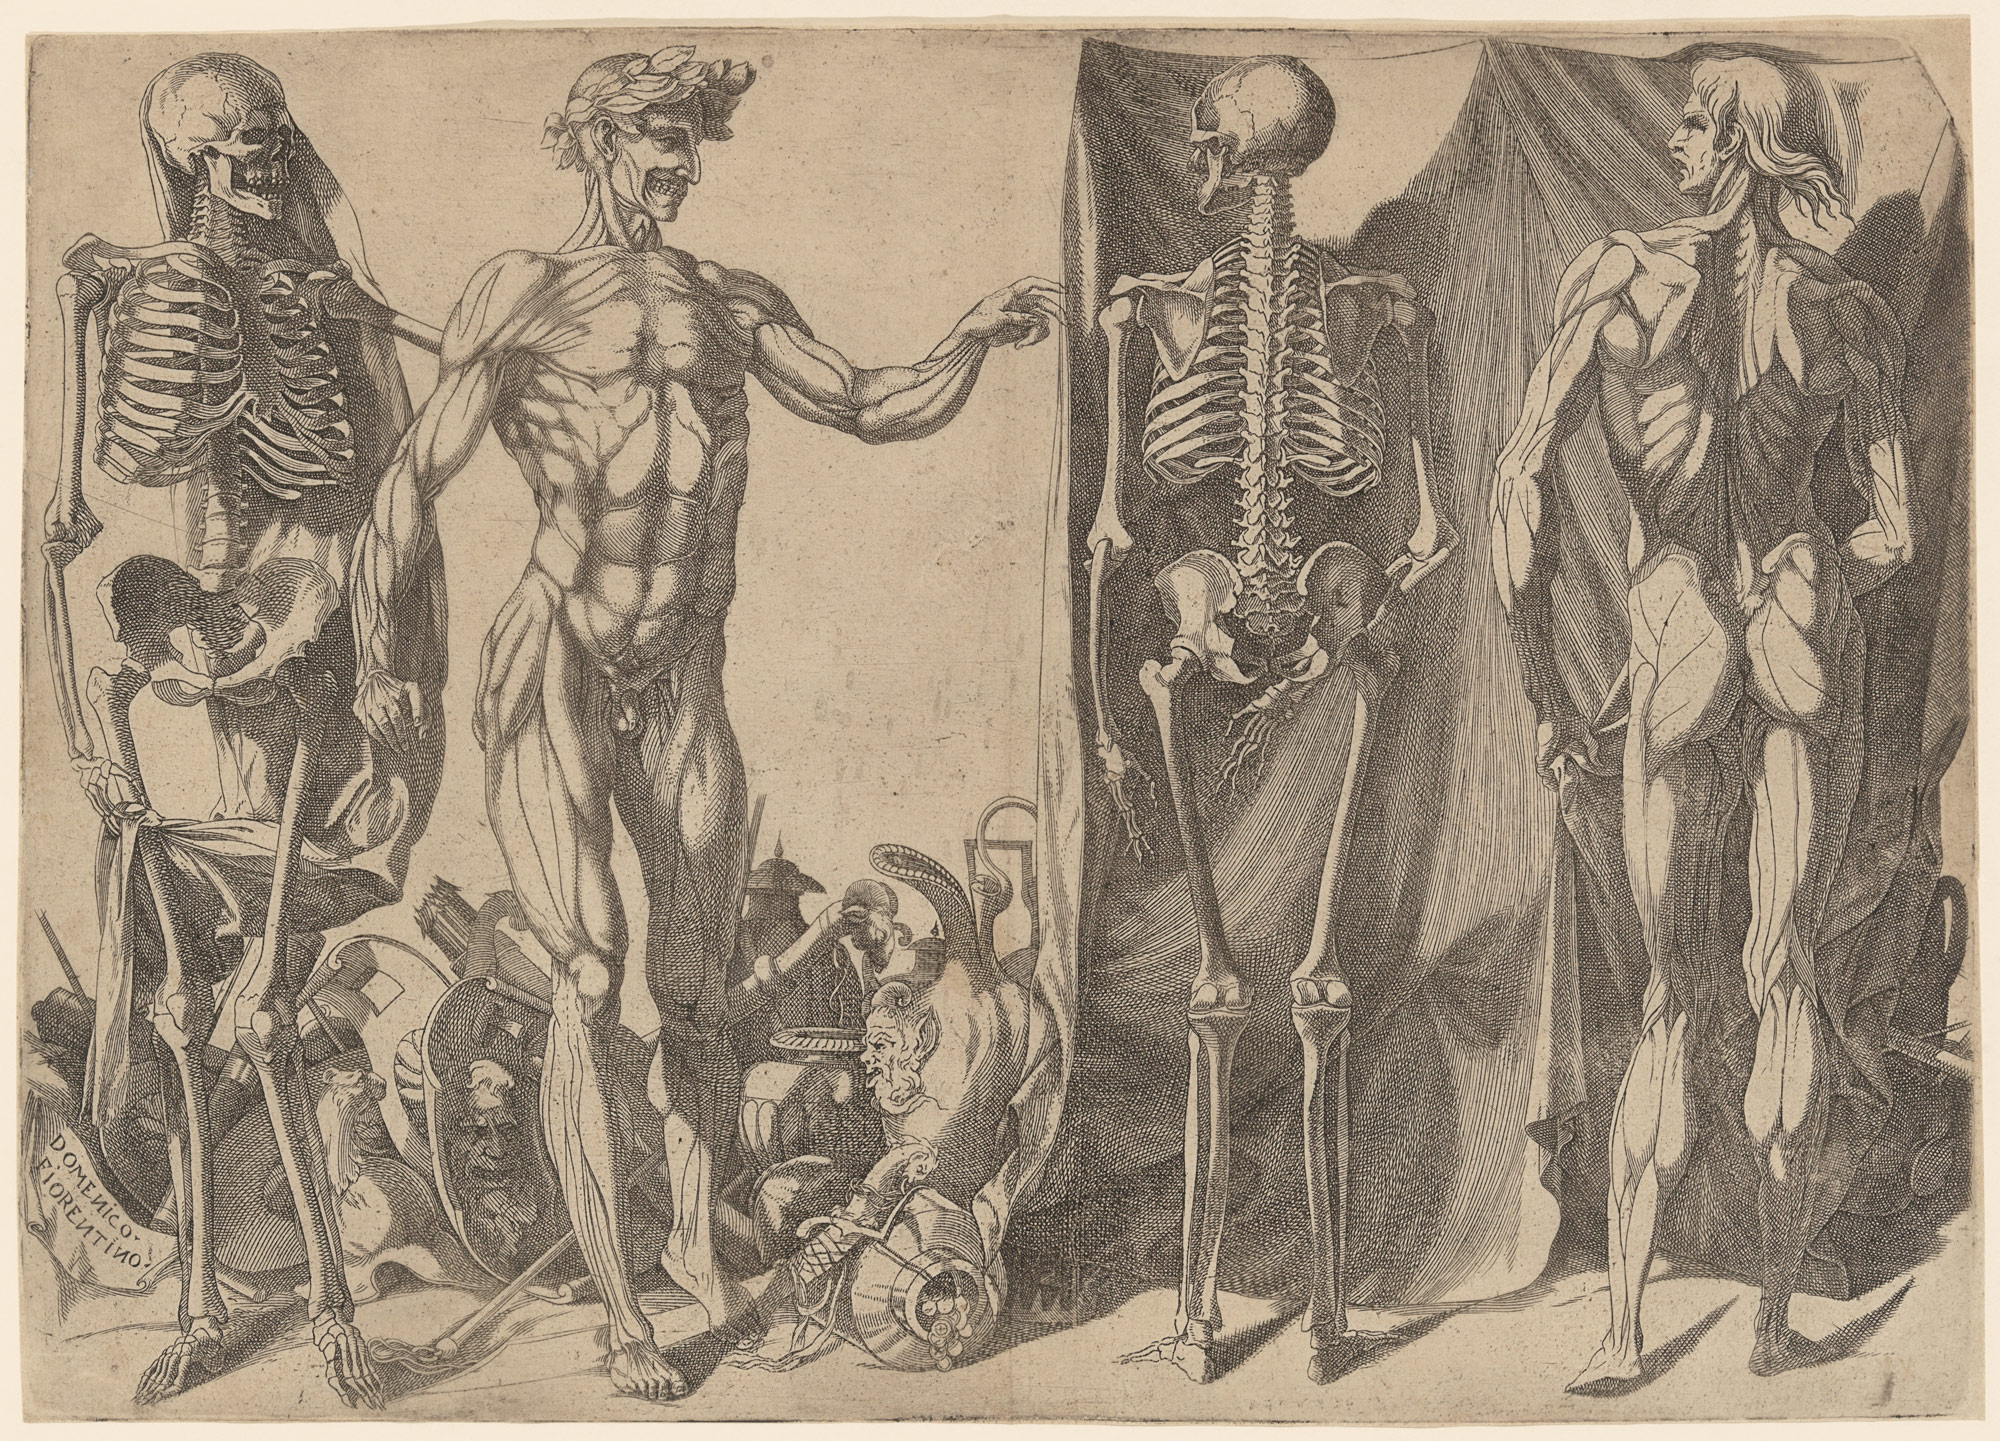 Two Flayed Men and Skeletons